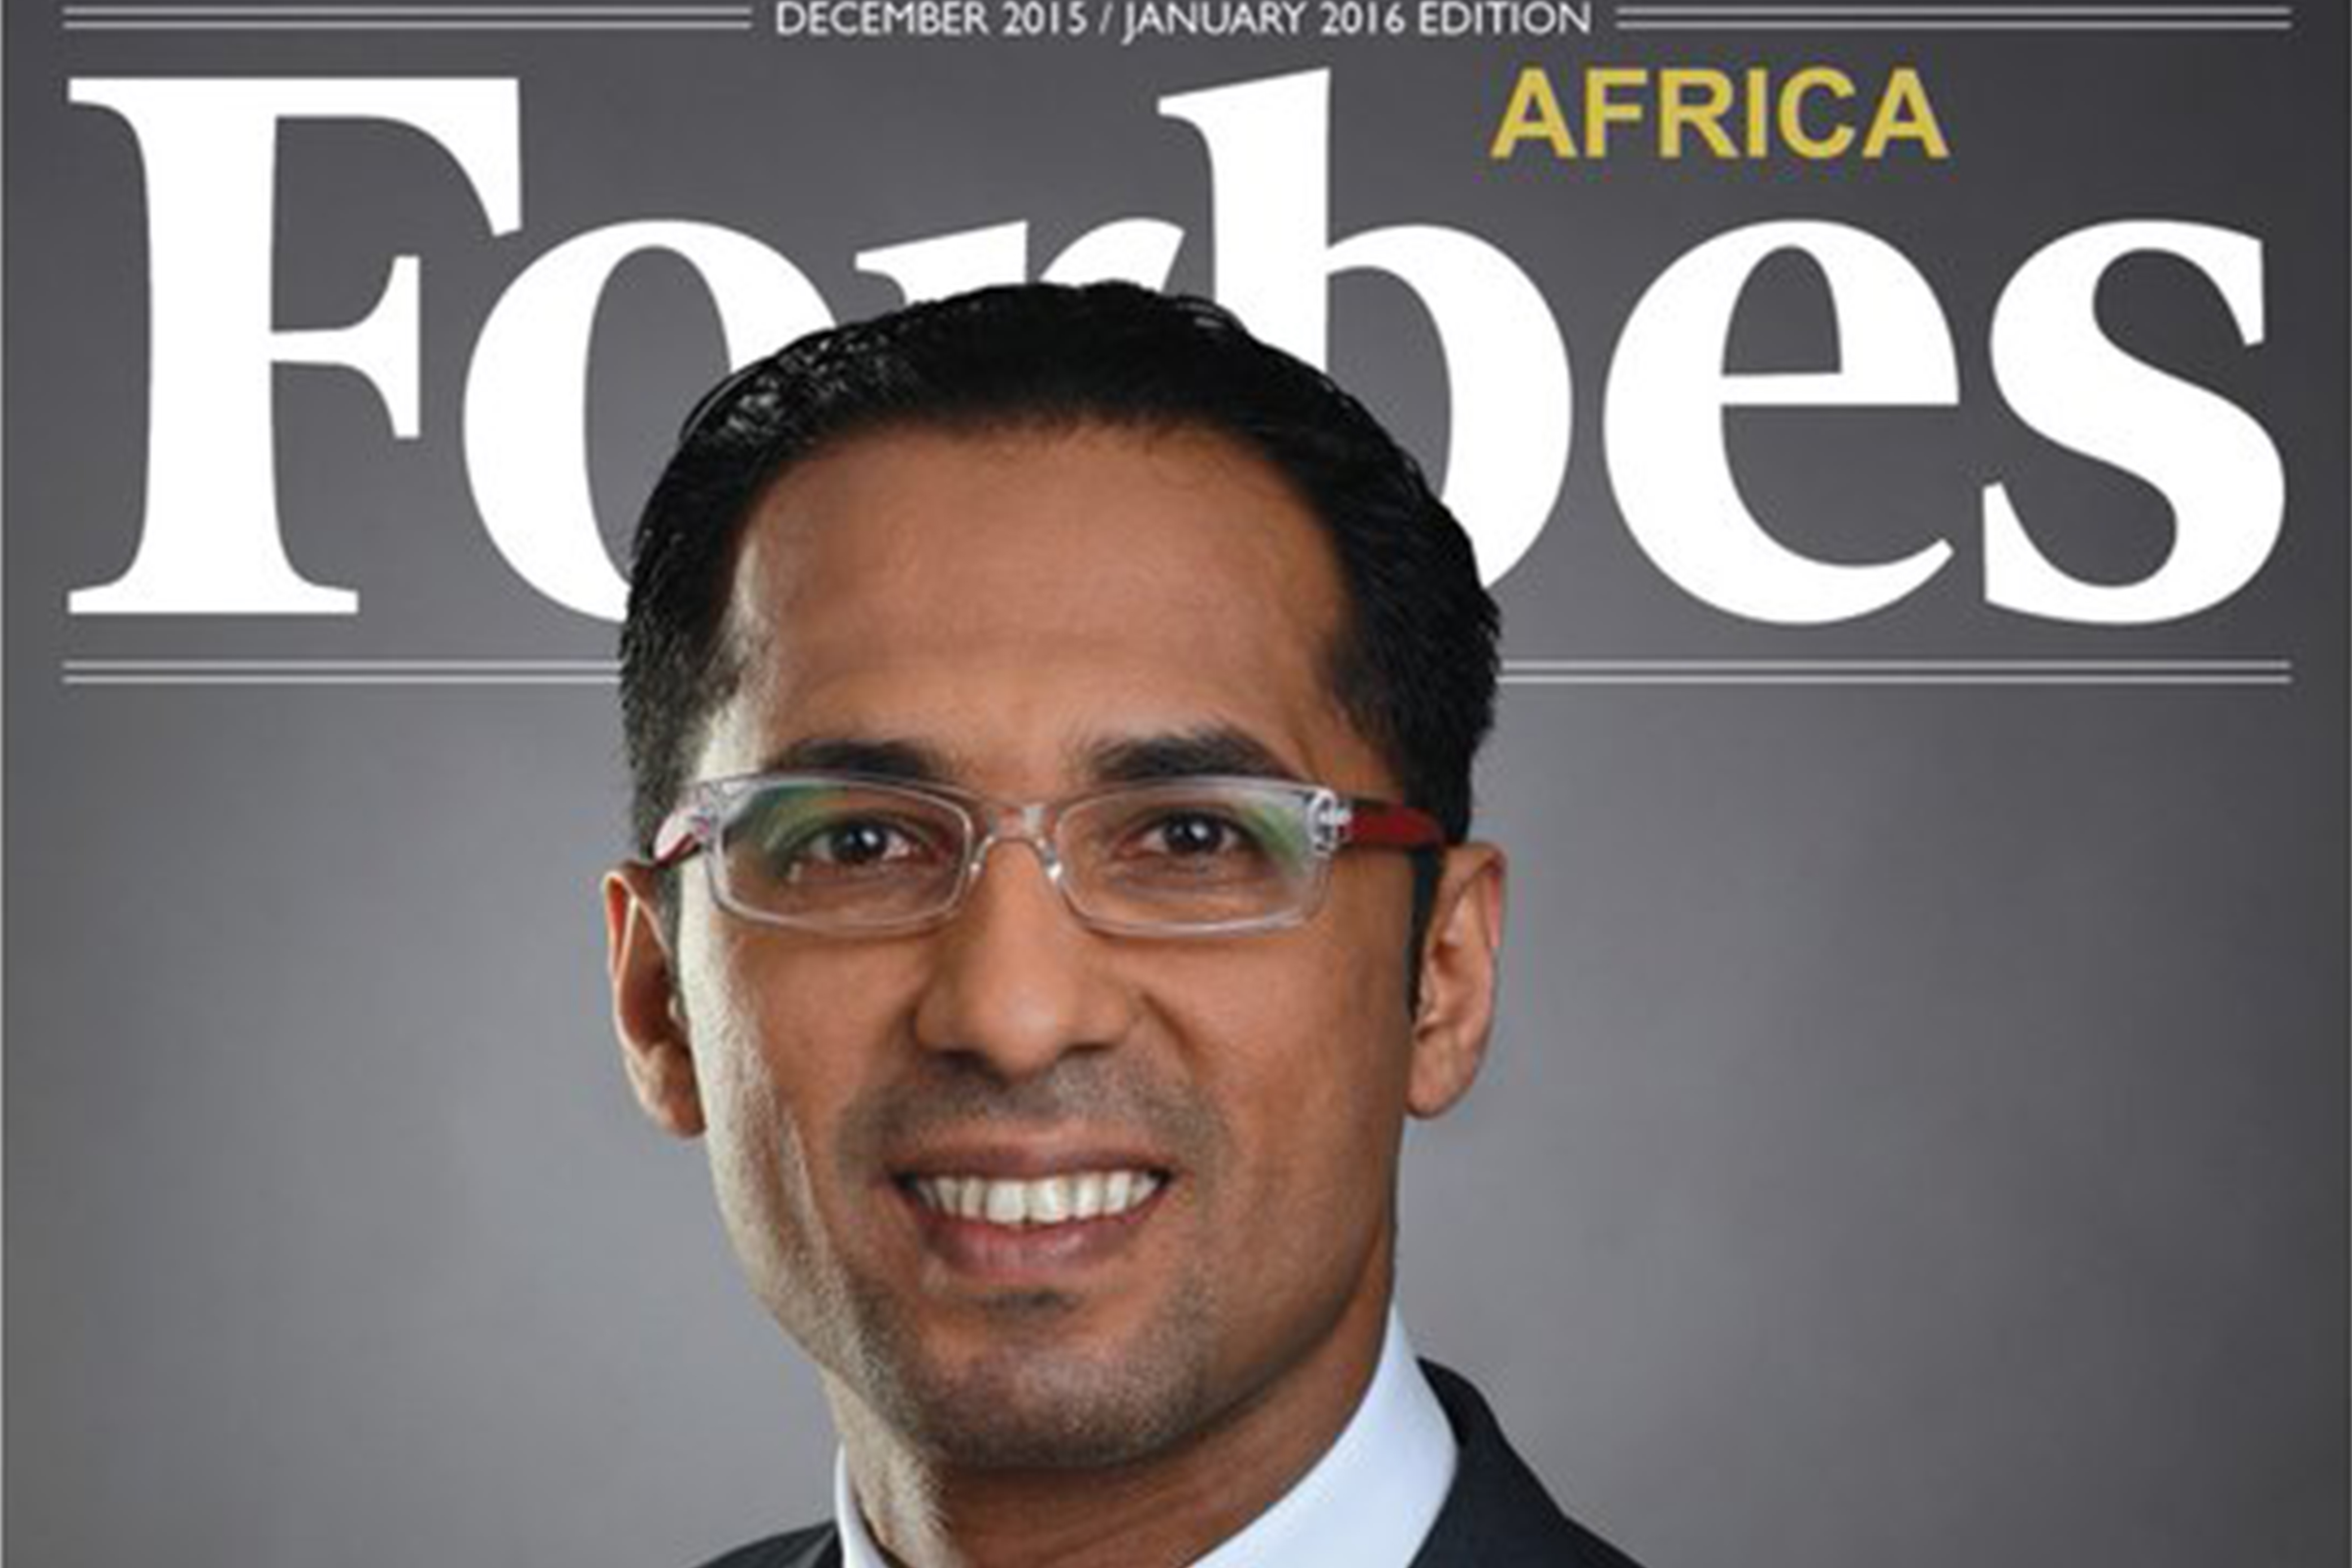 Tanzania's Richest Man Mohammed Dewji Is Forbes Africa's Man Of The Year – Forbes